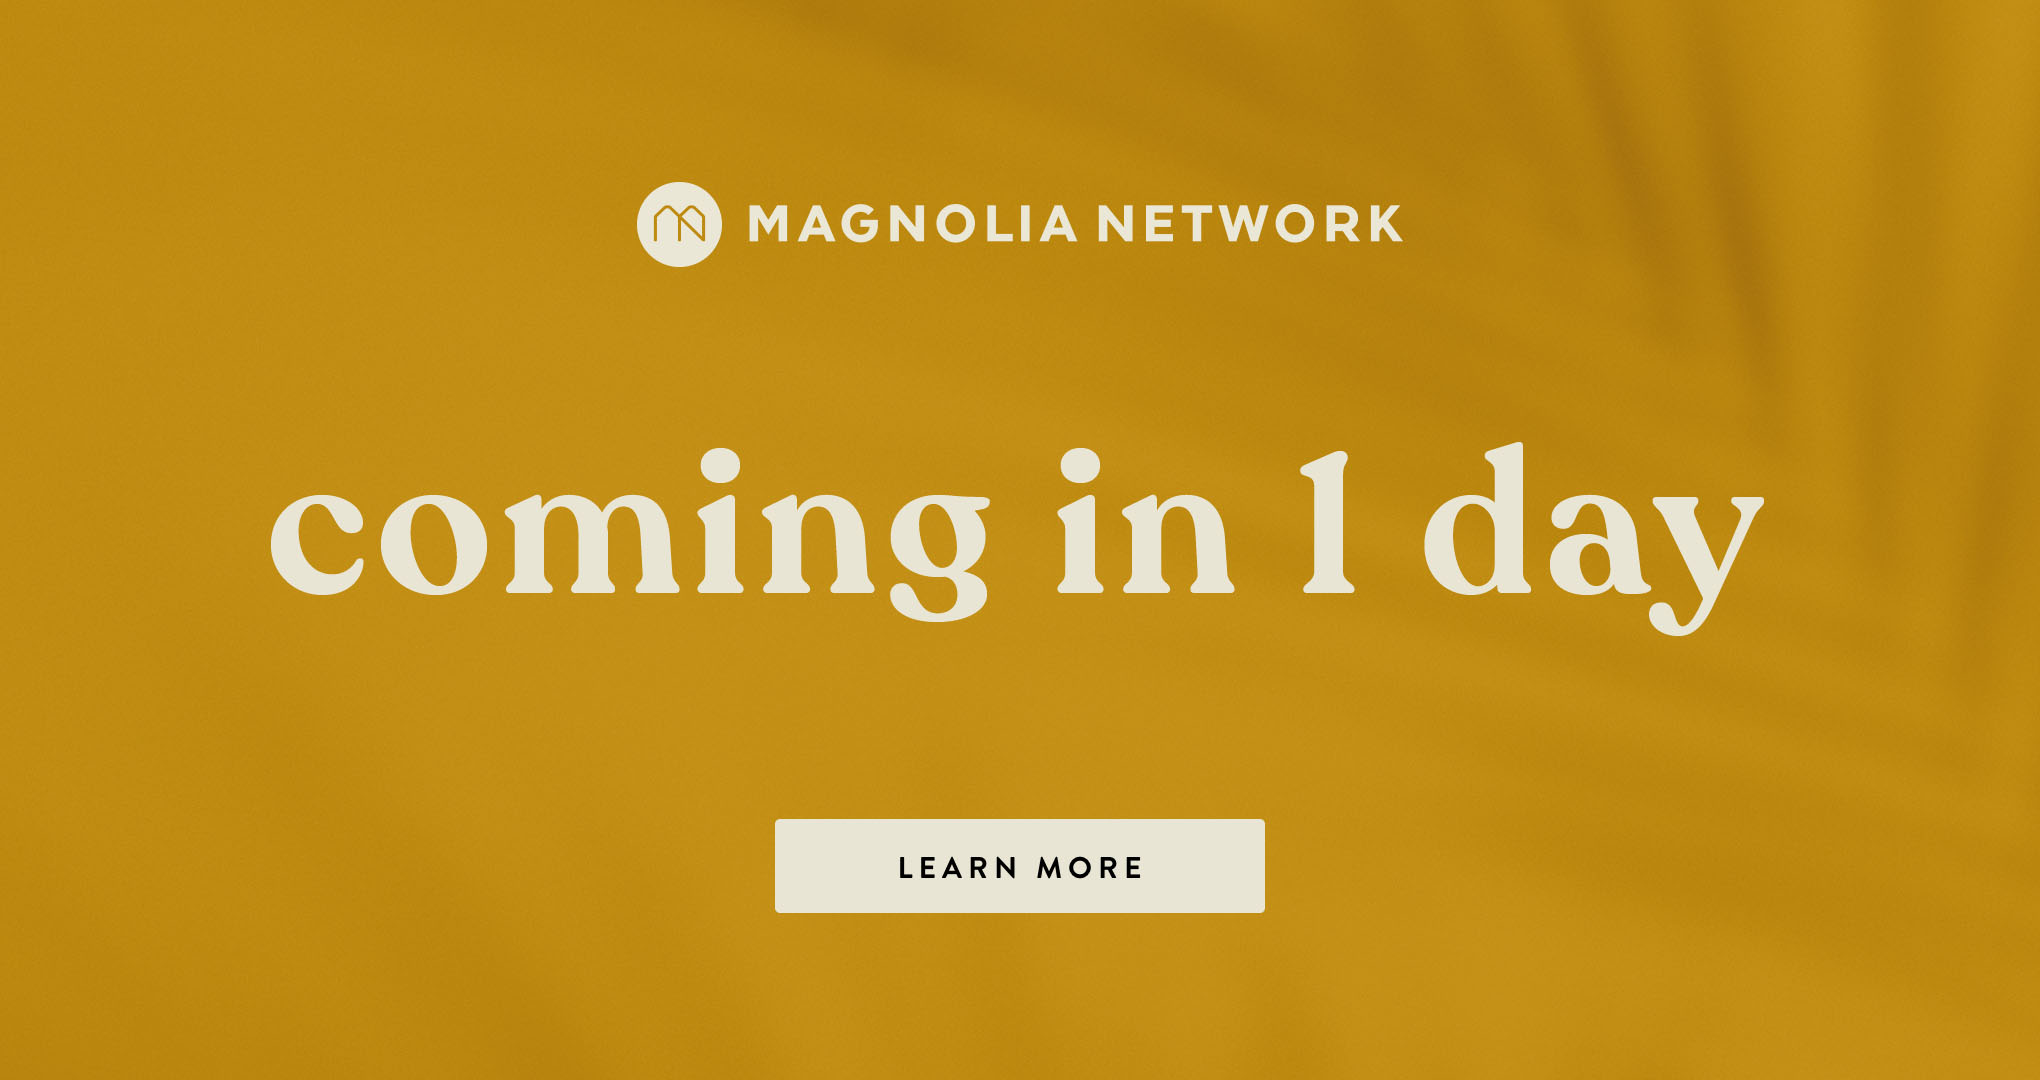 Magnolia Network!  Coming in 1 Day!